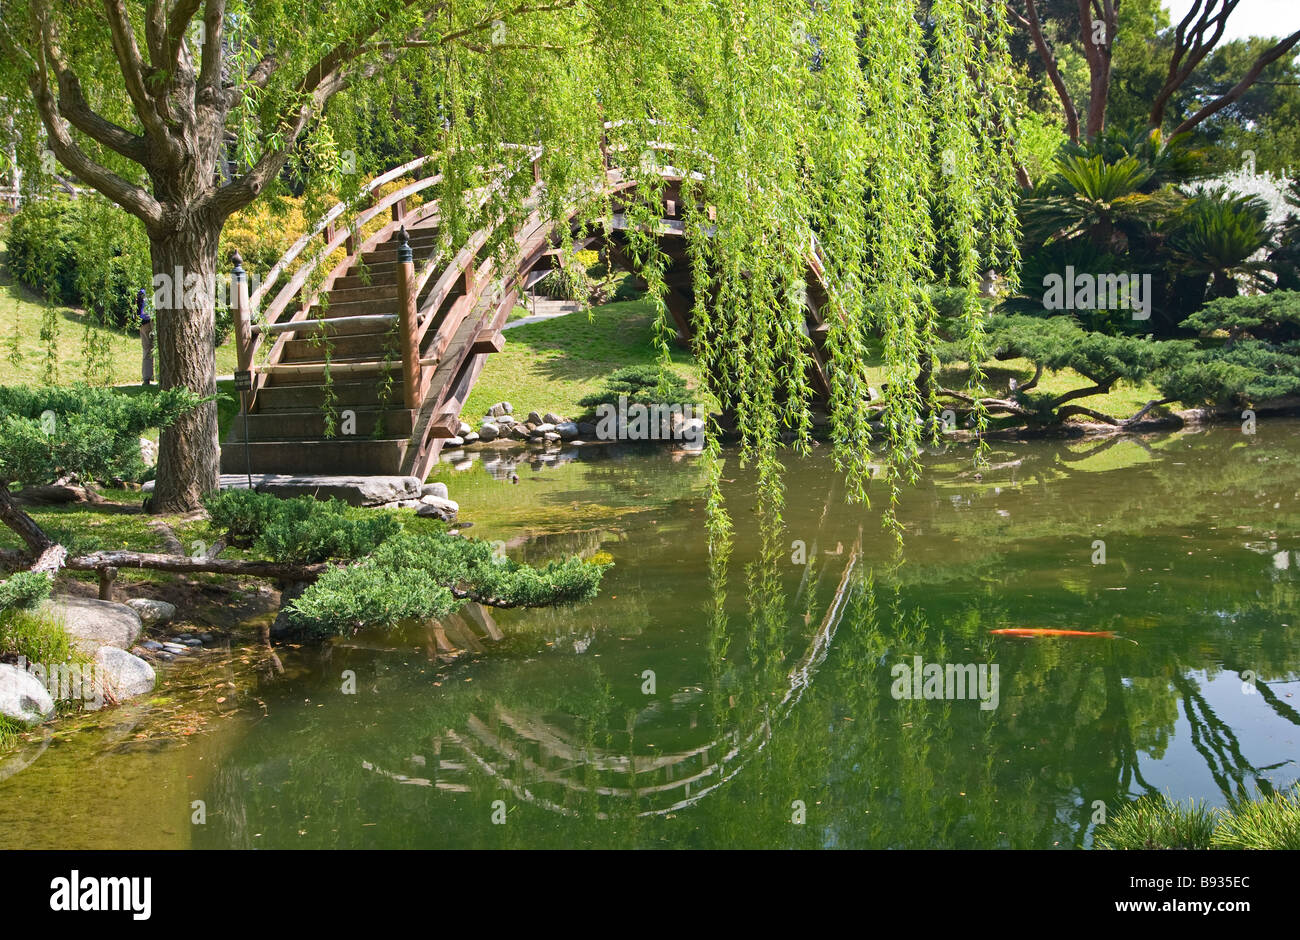 japanese garden with moon bridge and lotus pond and koi fish stock photo - Japanese Koi Garden